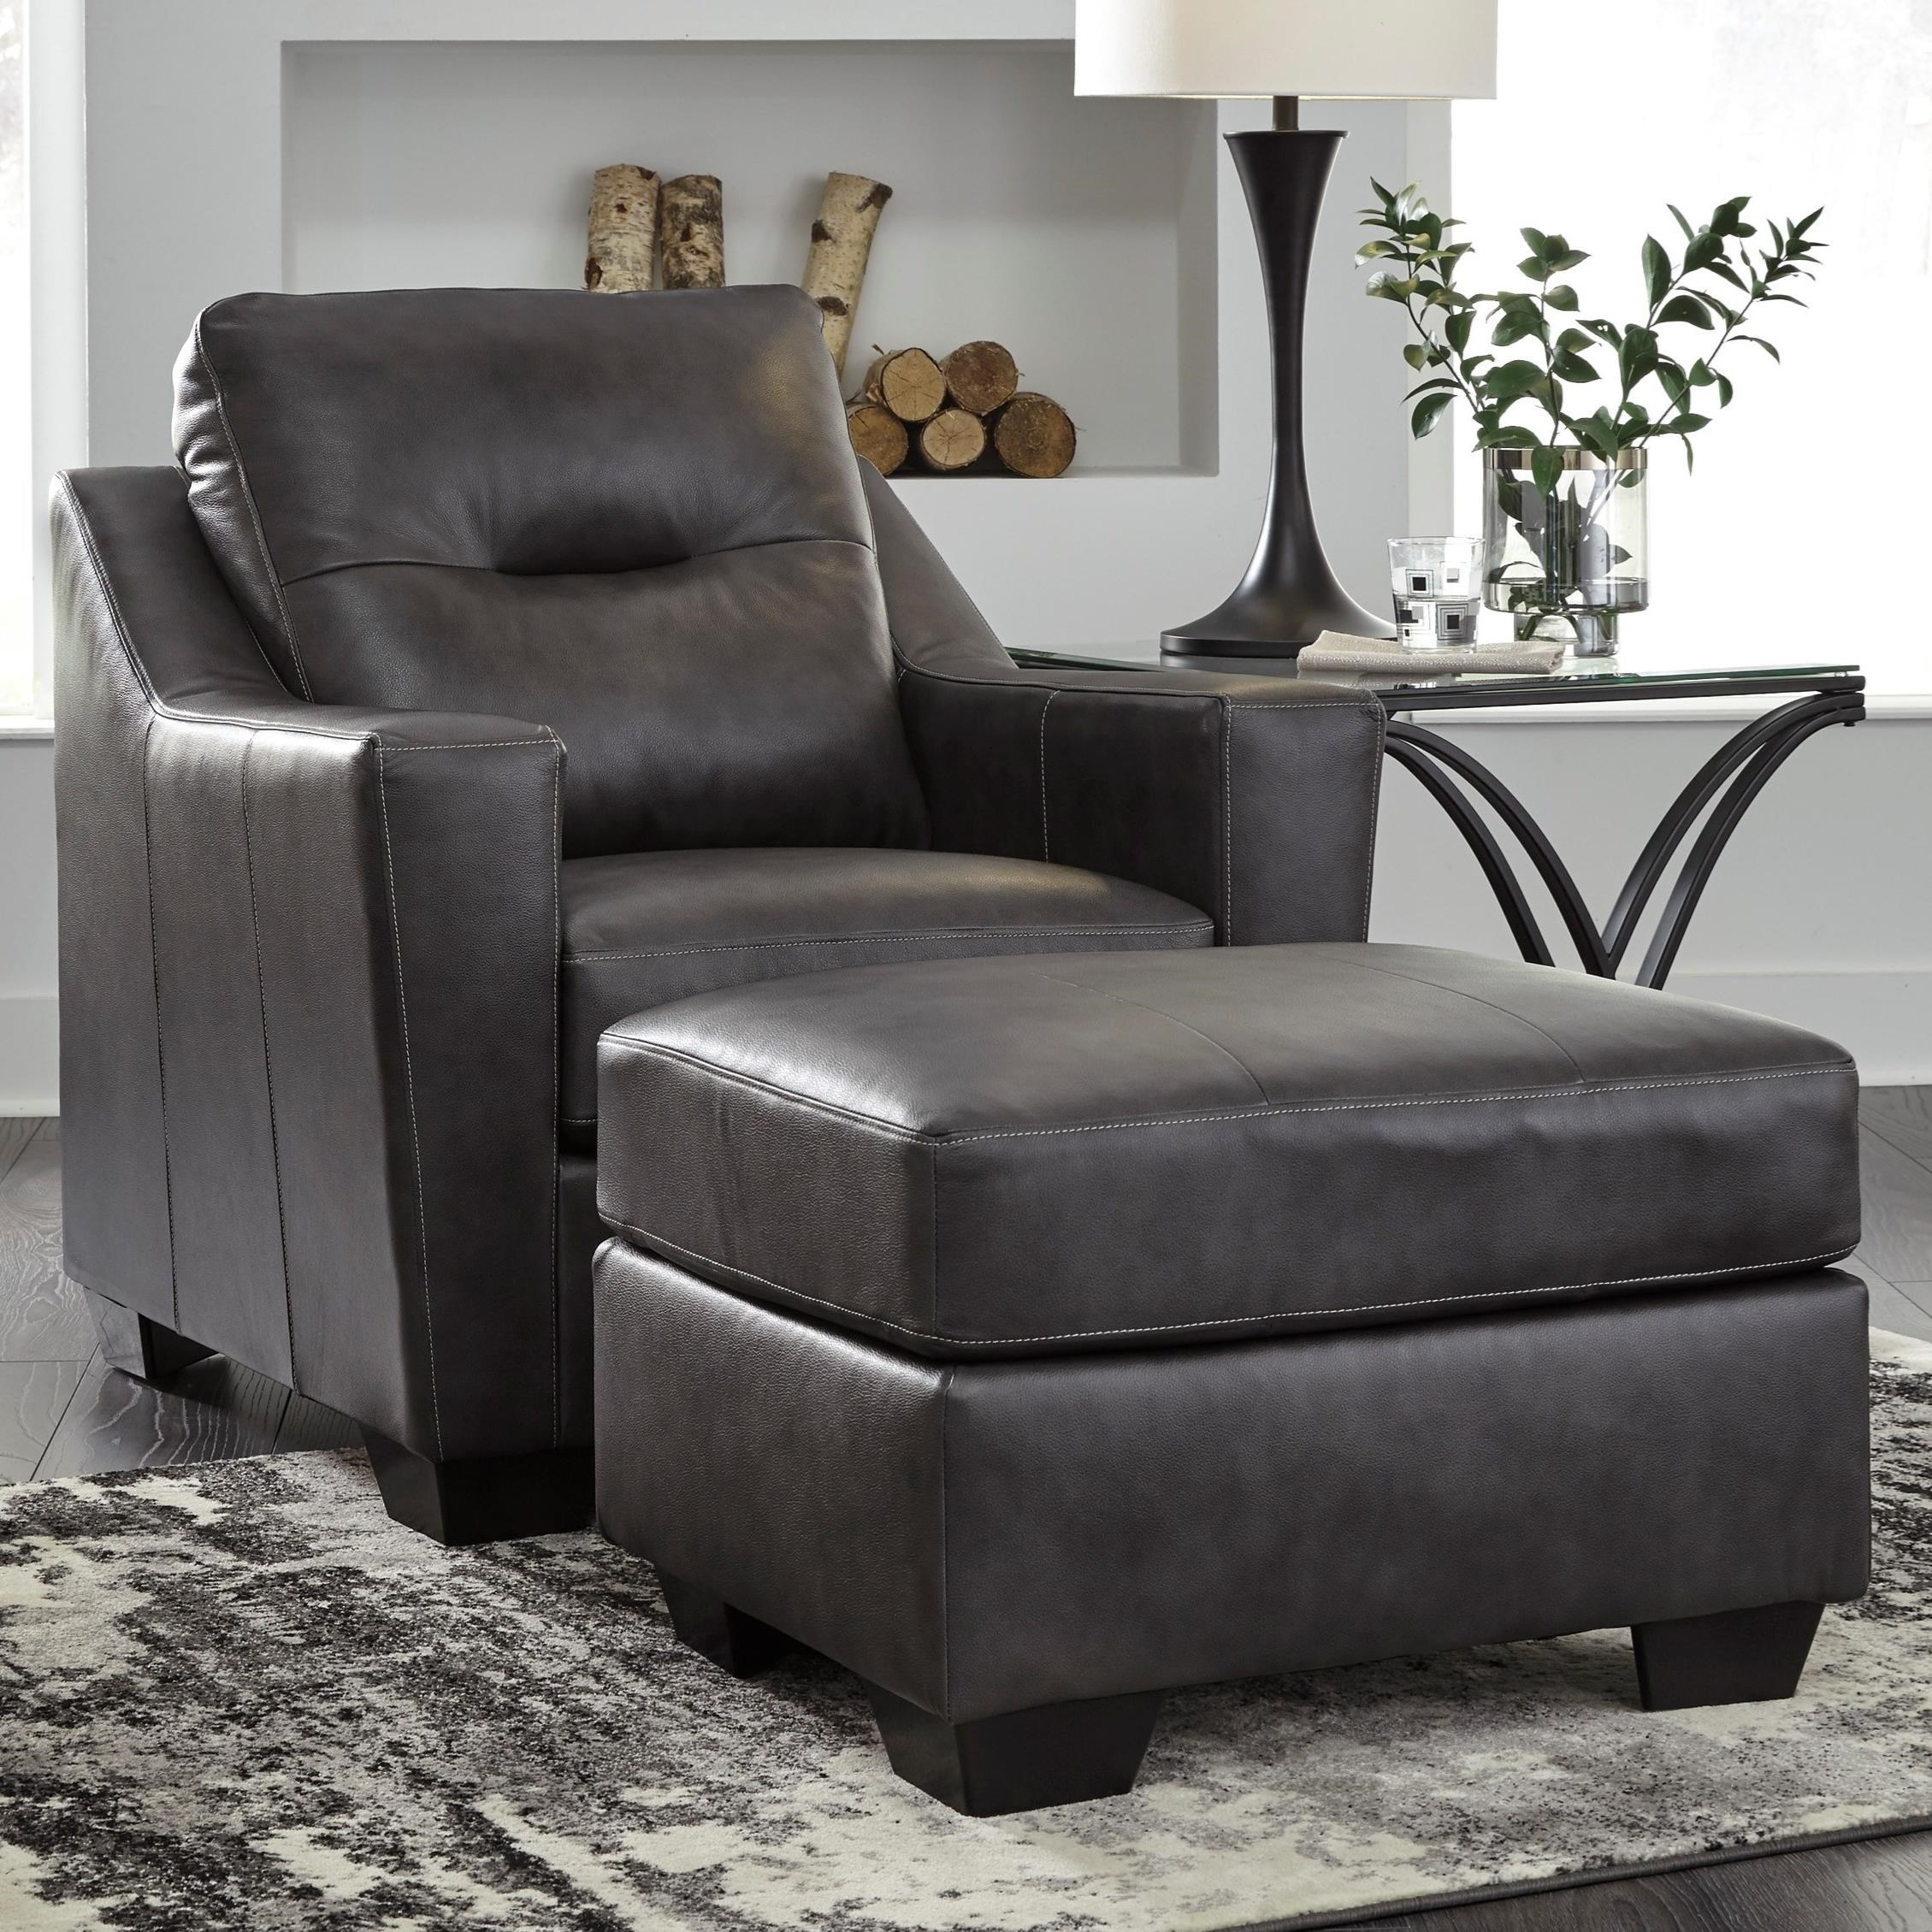 Signature Design By Ashley Kensbridge Leather Match Contemporary Chair Ottoman Rife 39 S Home